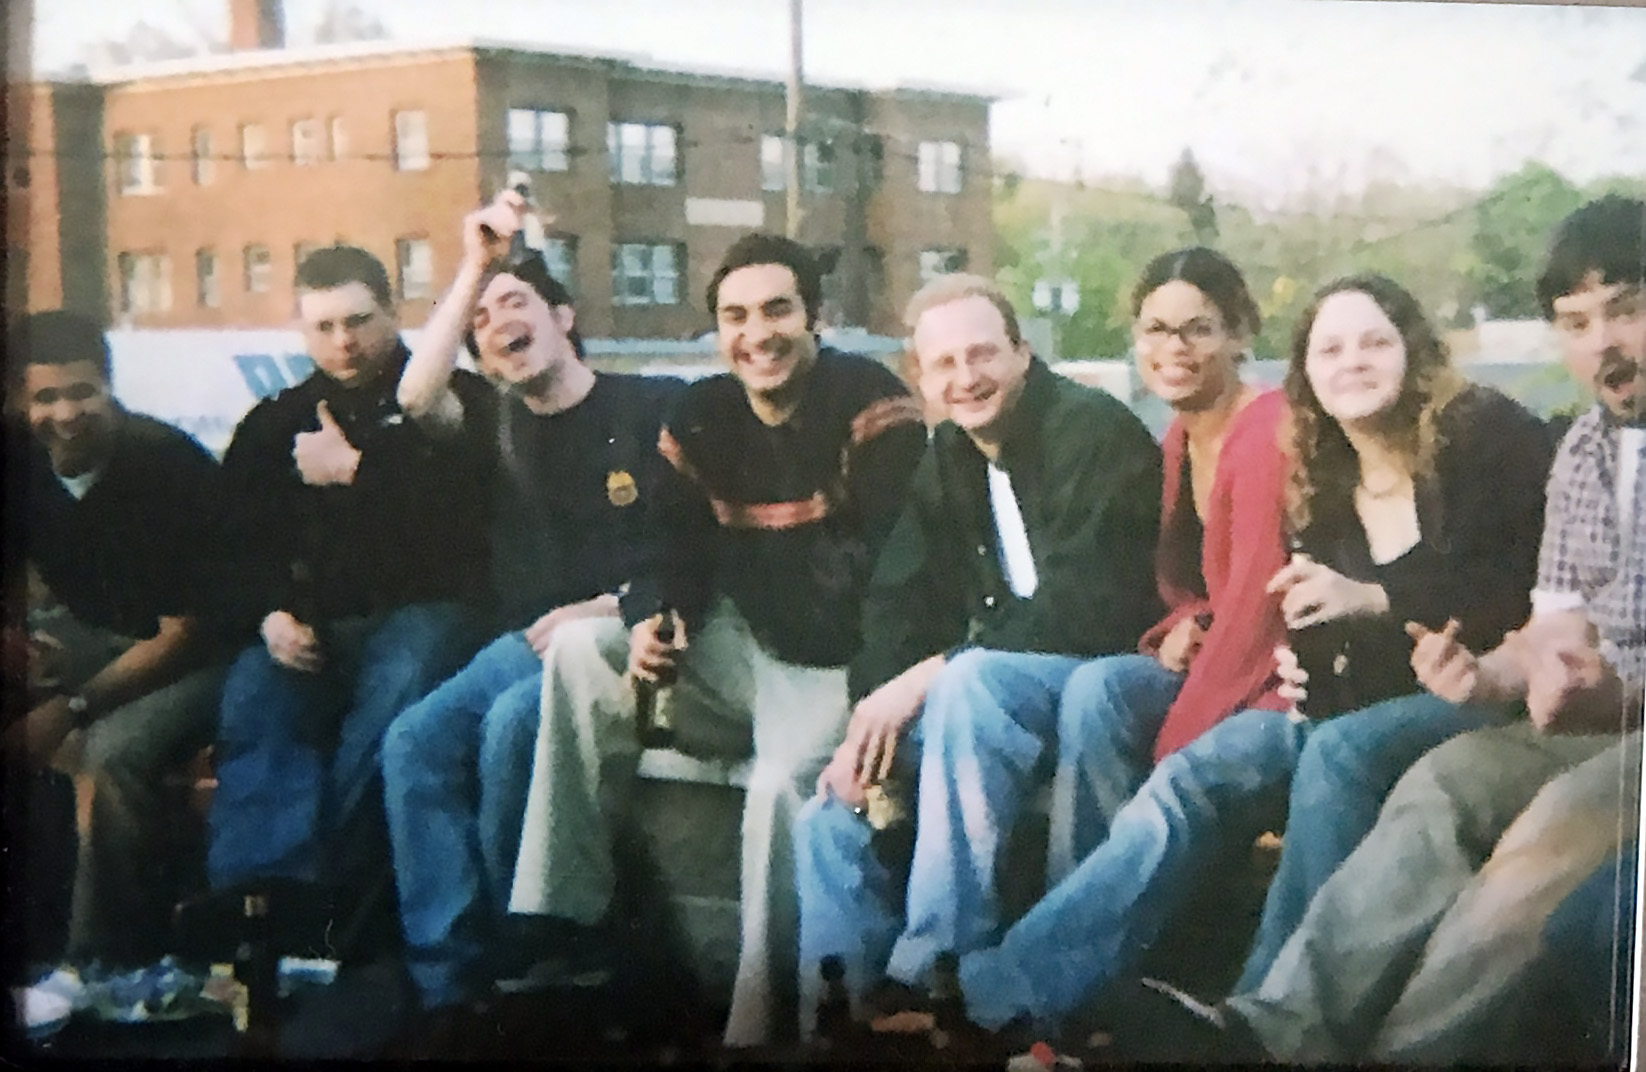 Members of Team Gephardt pictured in 2003: from left, Bill Burton, Travis Lowe, Brendan Greiner, Vijay Uppal, Preston Elliott, Rebecca Pearcey, Jessica Walls-Lavelle and Andy LaVigne. (Courtesy Rebecca Pearcey)